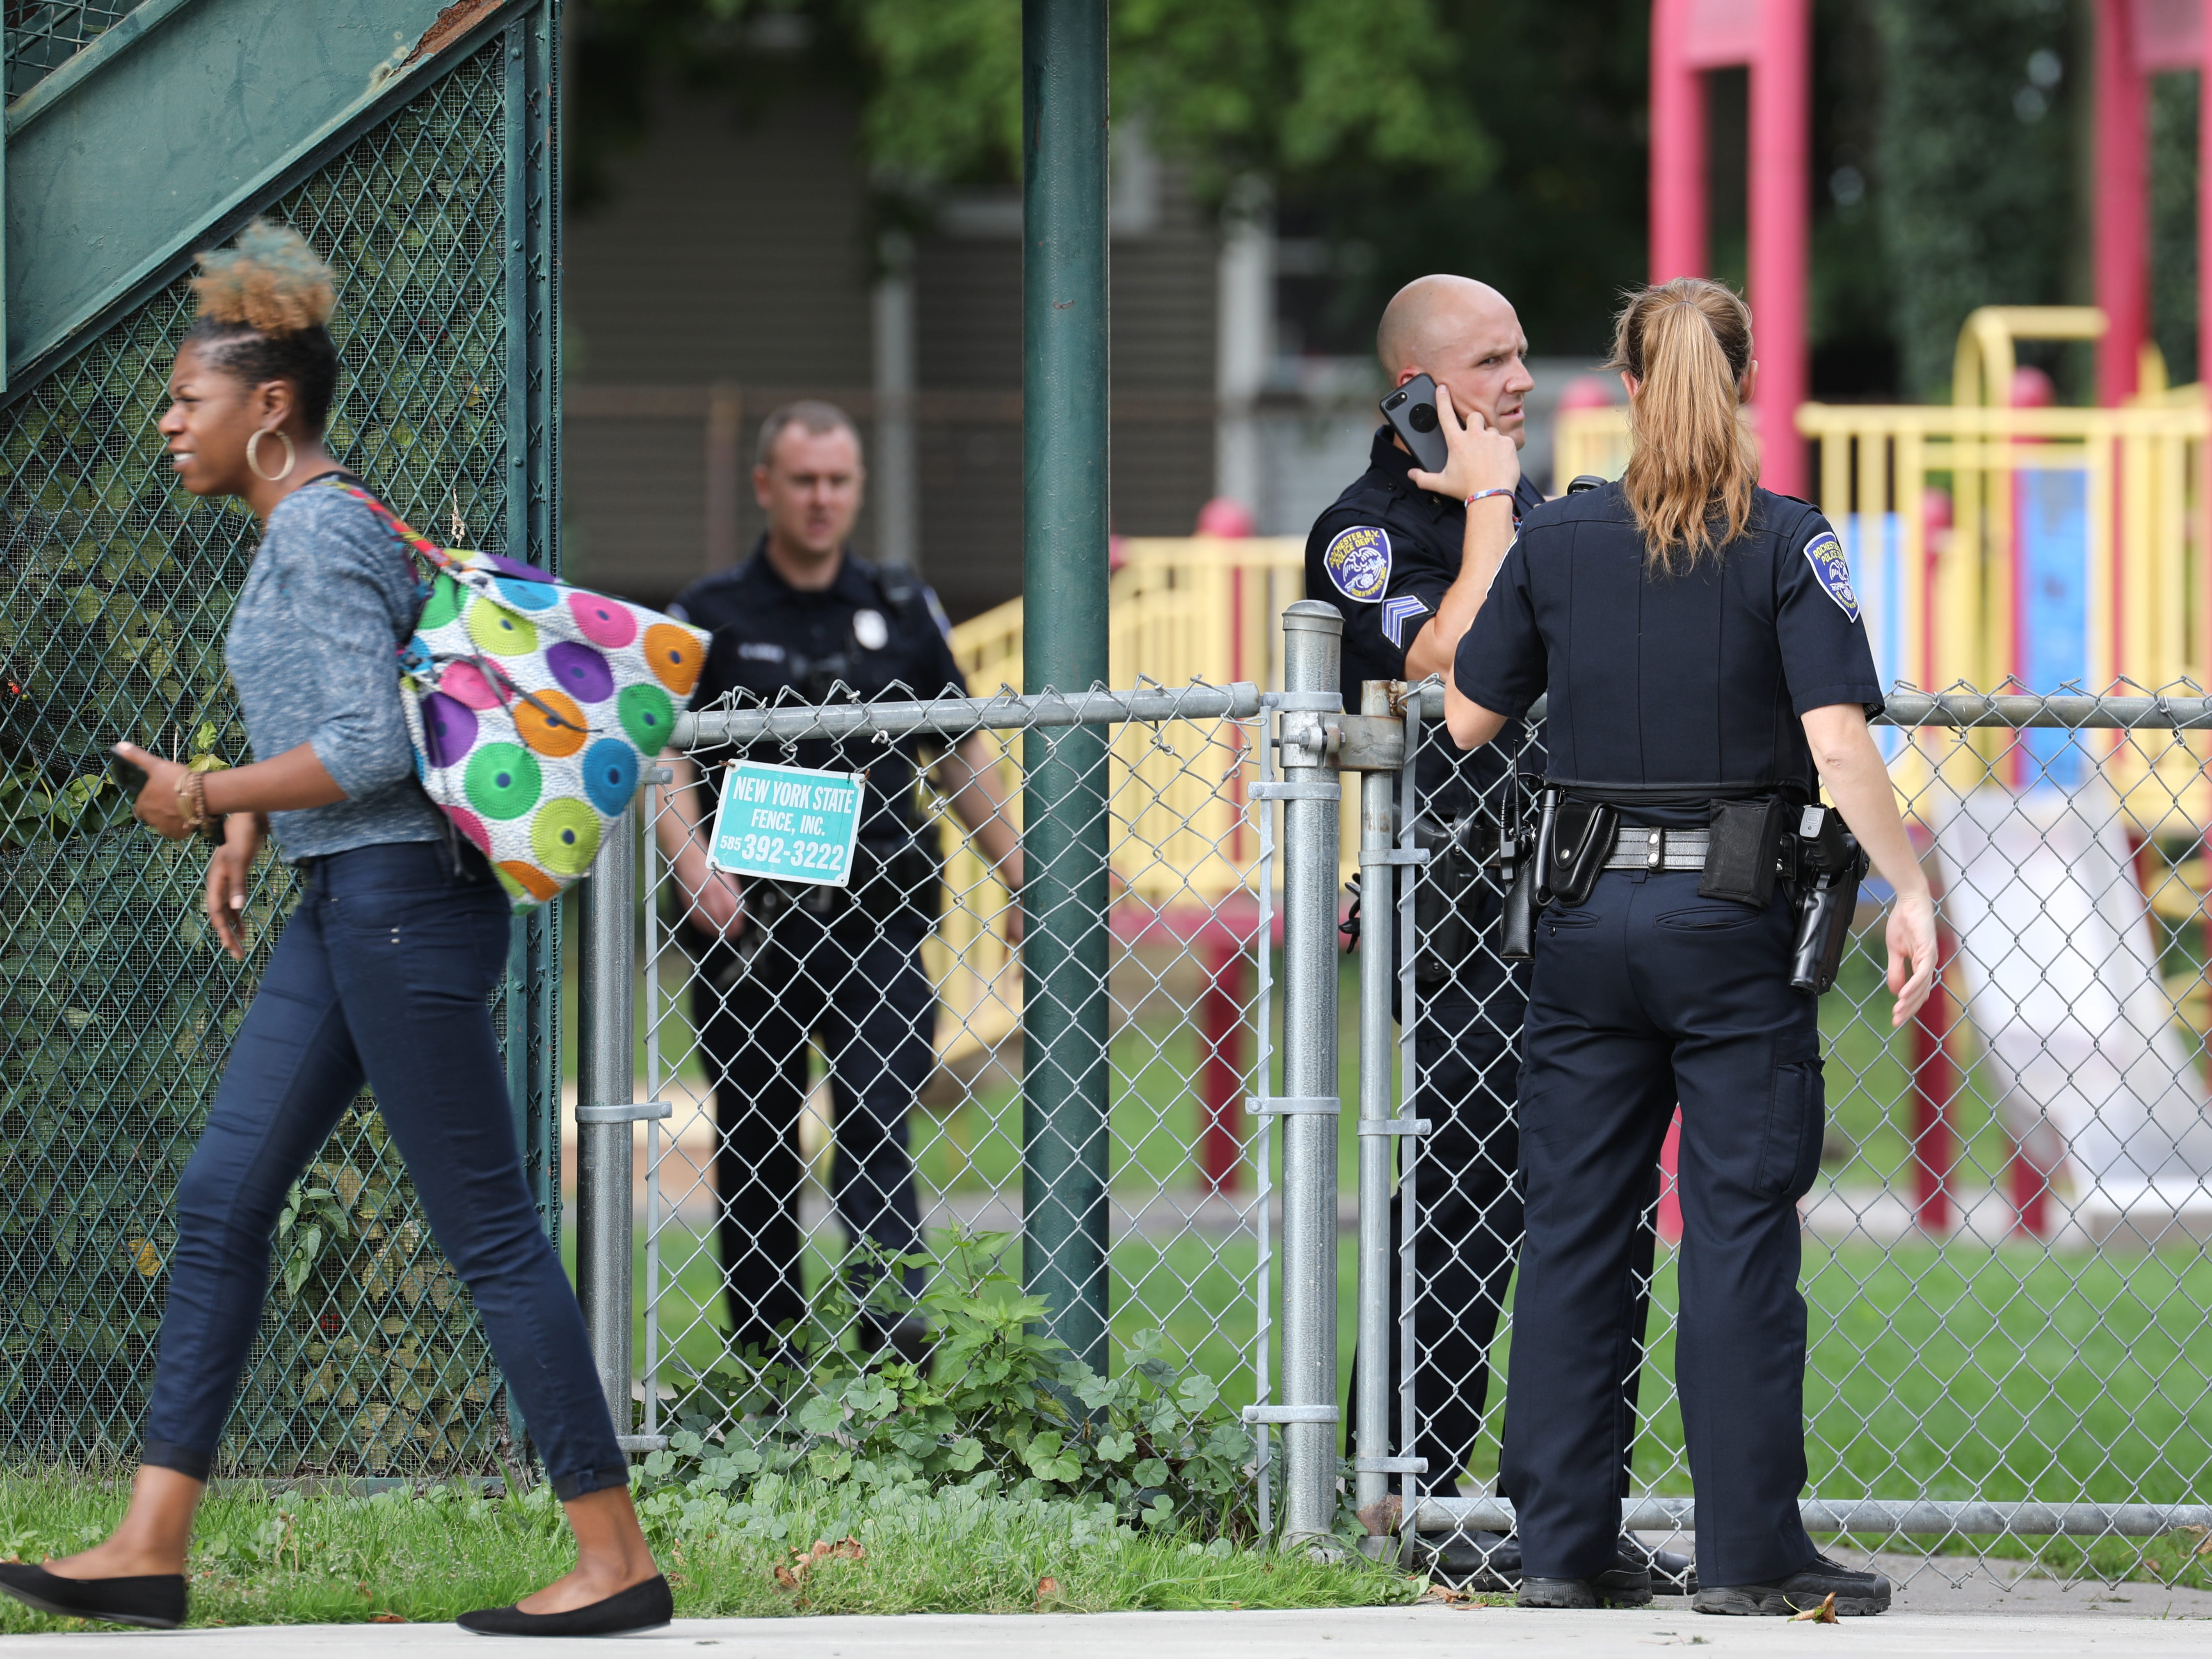 Police investigate a shooting at School 25, in Rochester, N.Y., Wednesday, Oct. 10, 2018.